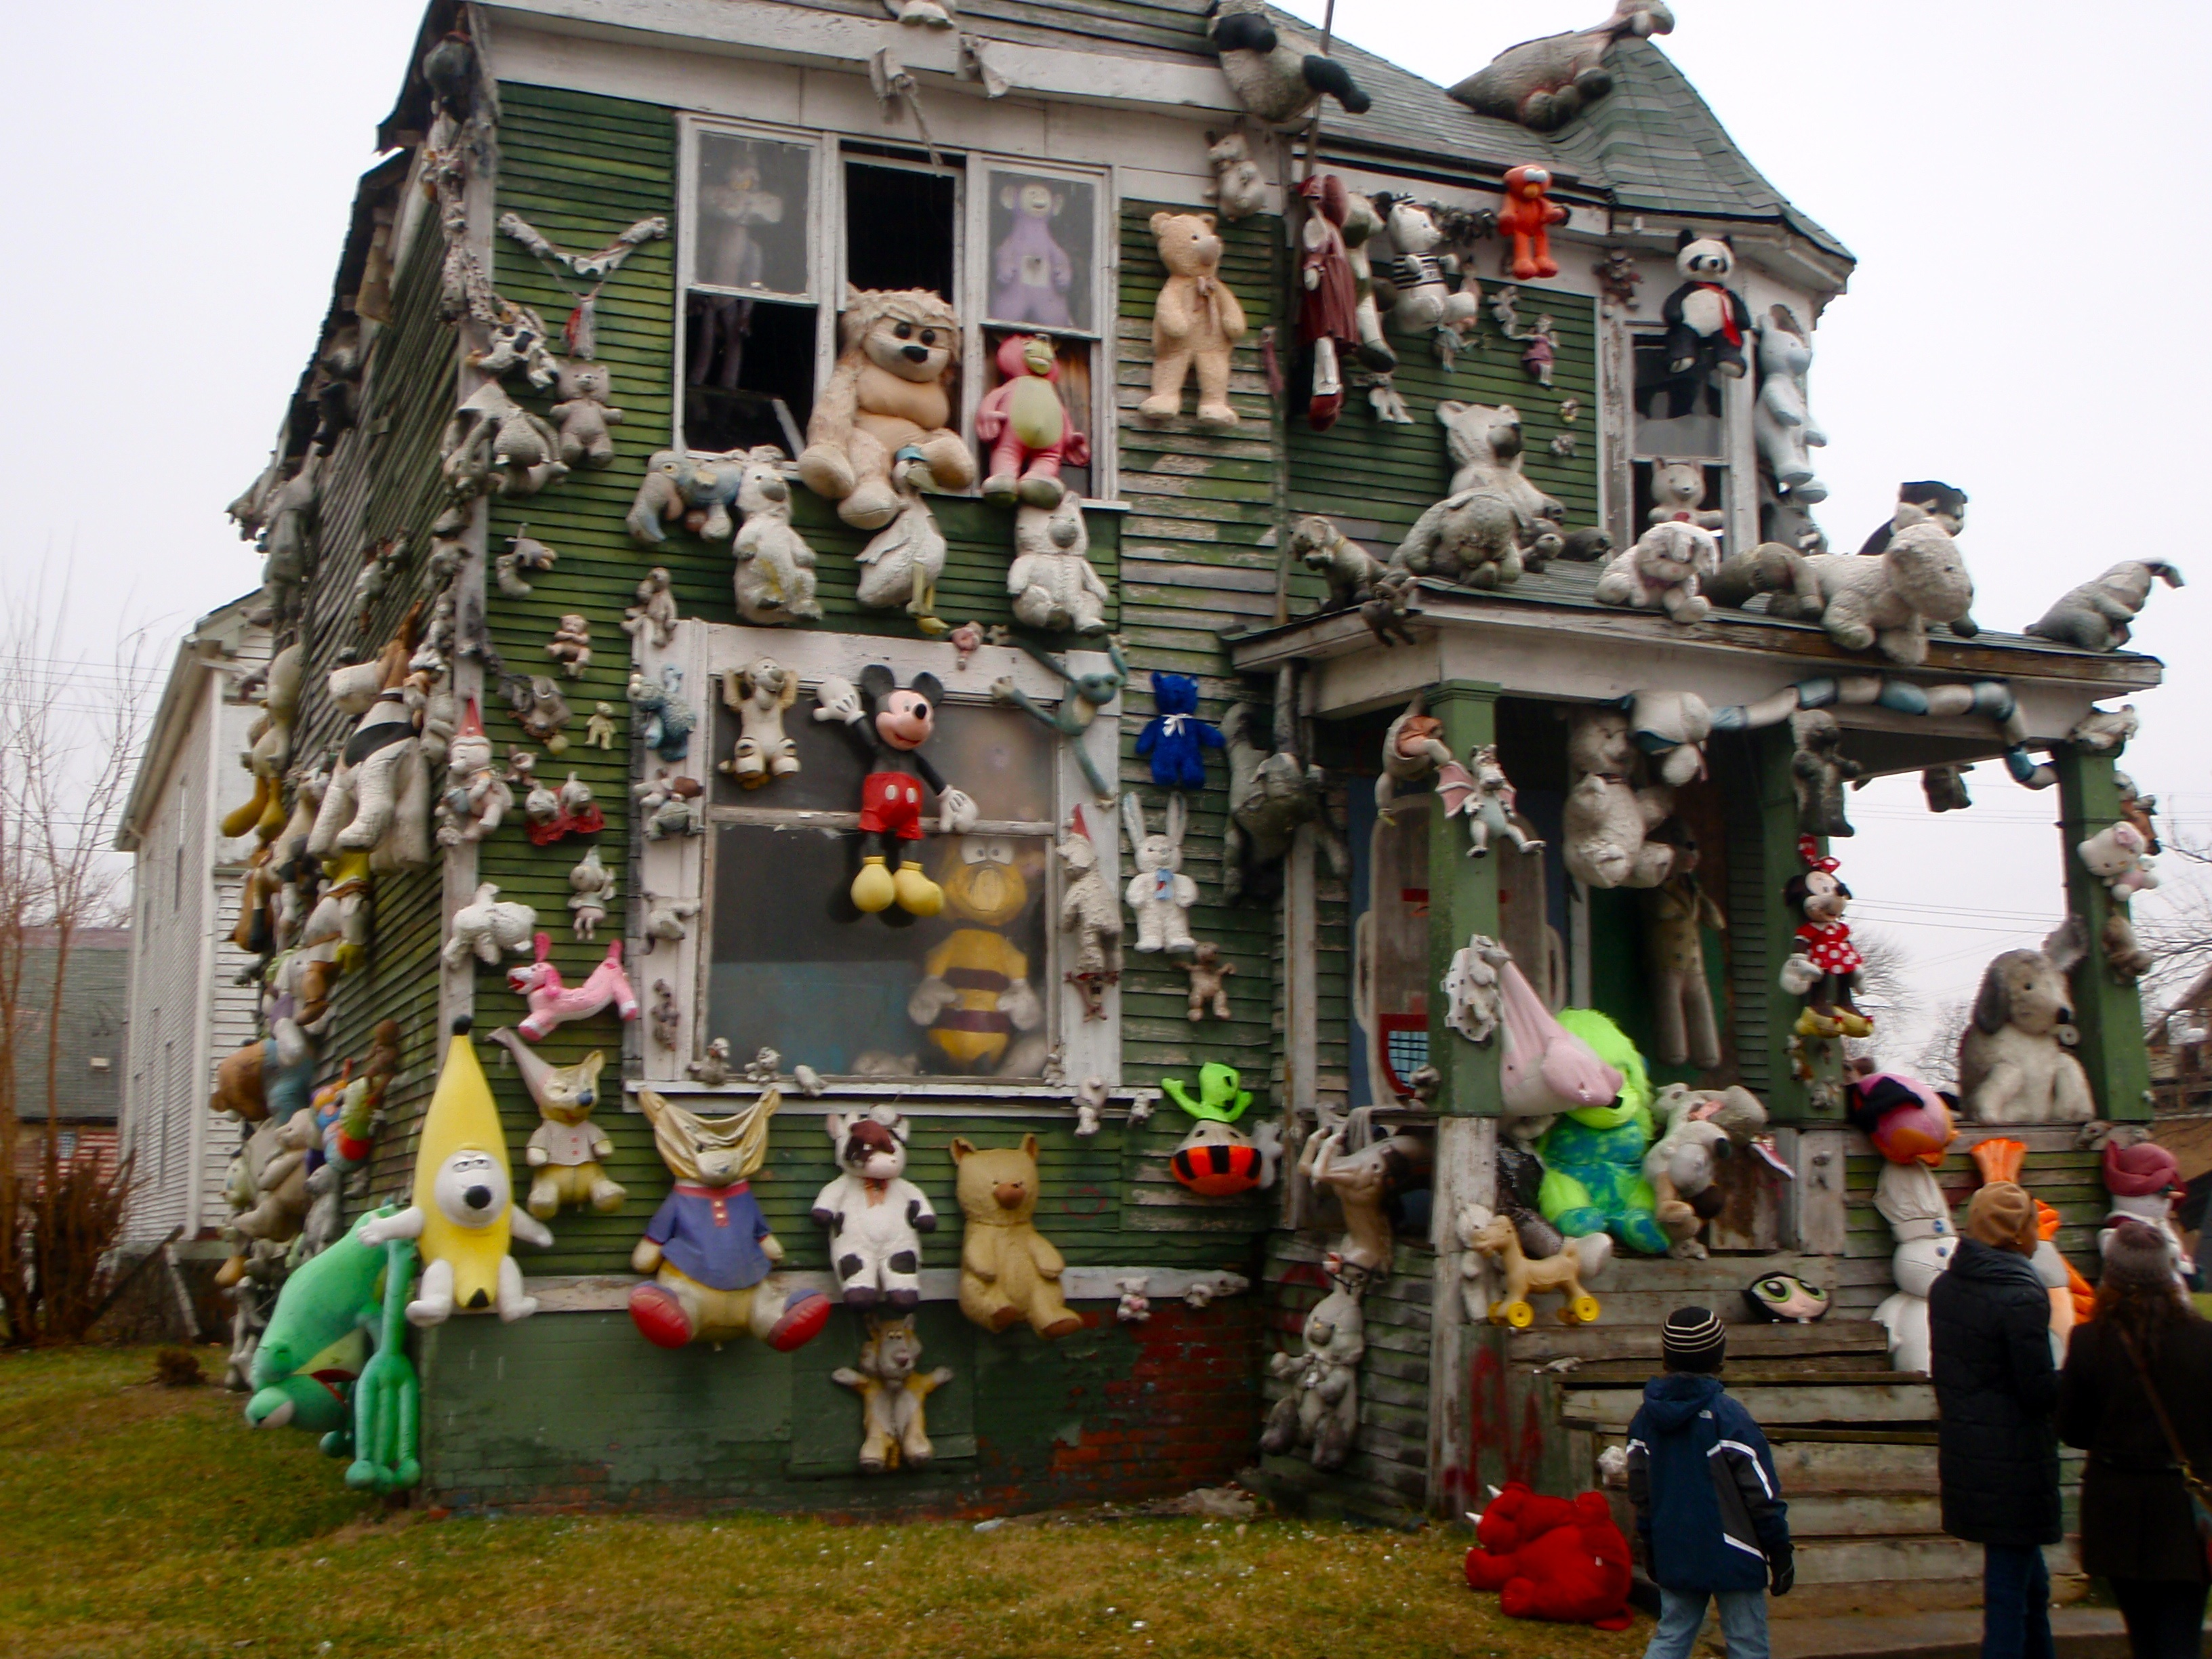 File:Detroit Stuffed Animal House.jpg - Wikimedia Commons